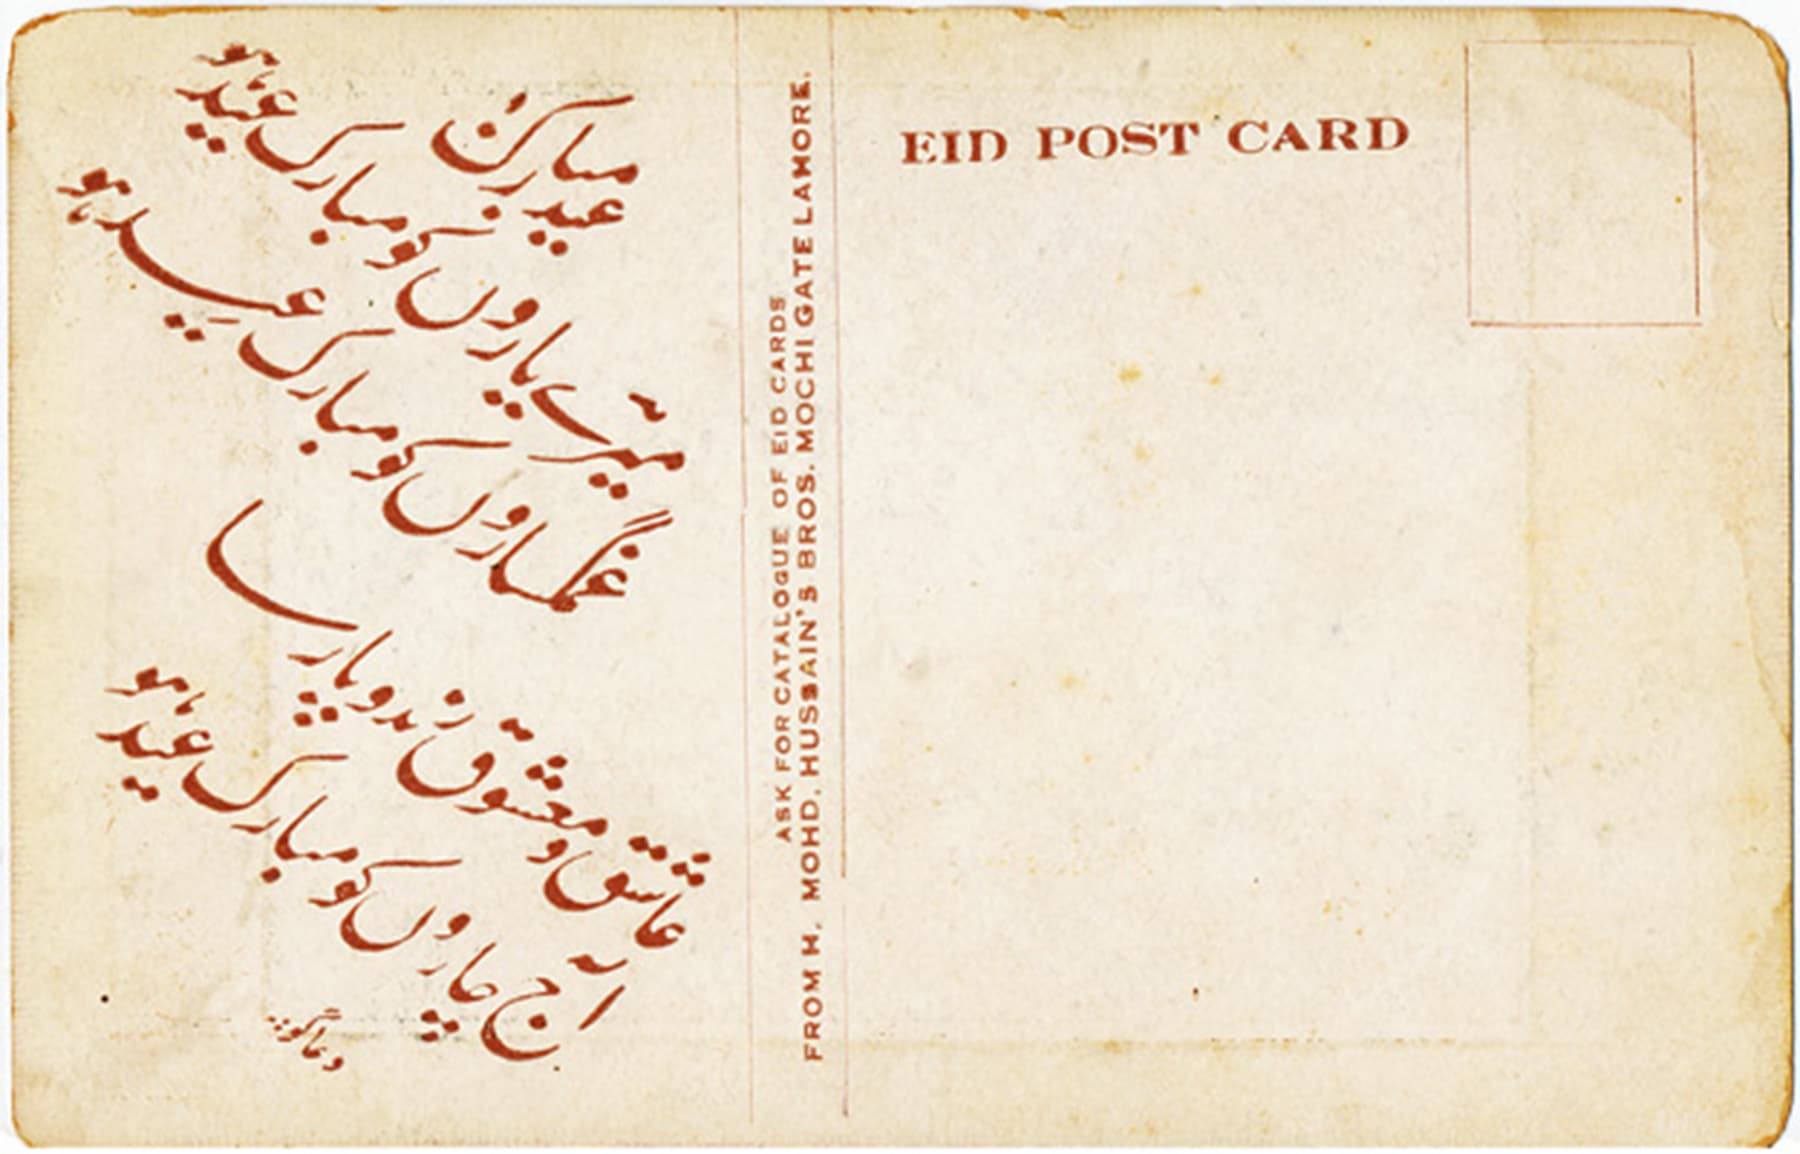 Urdu couplets on the message side of an Eid card published in Lahore. From the Priya Paul Collection, New Delhi.